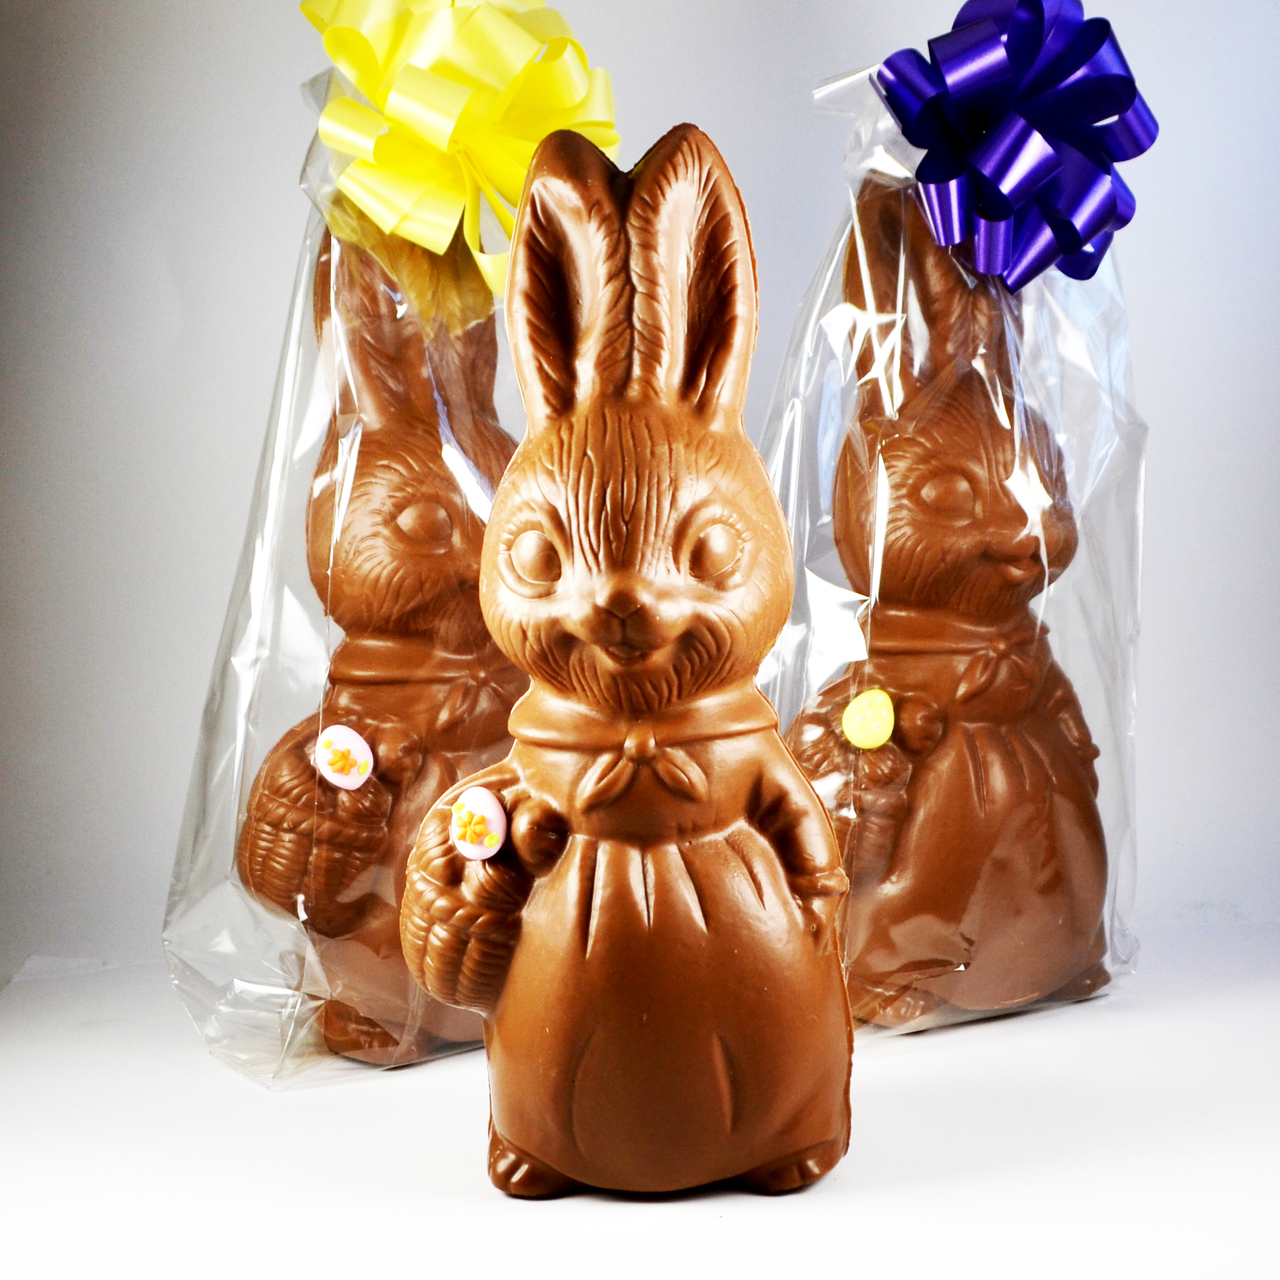 Missy Chocolate Bunny - The Chocolatier